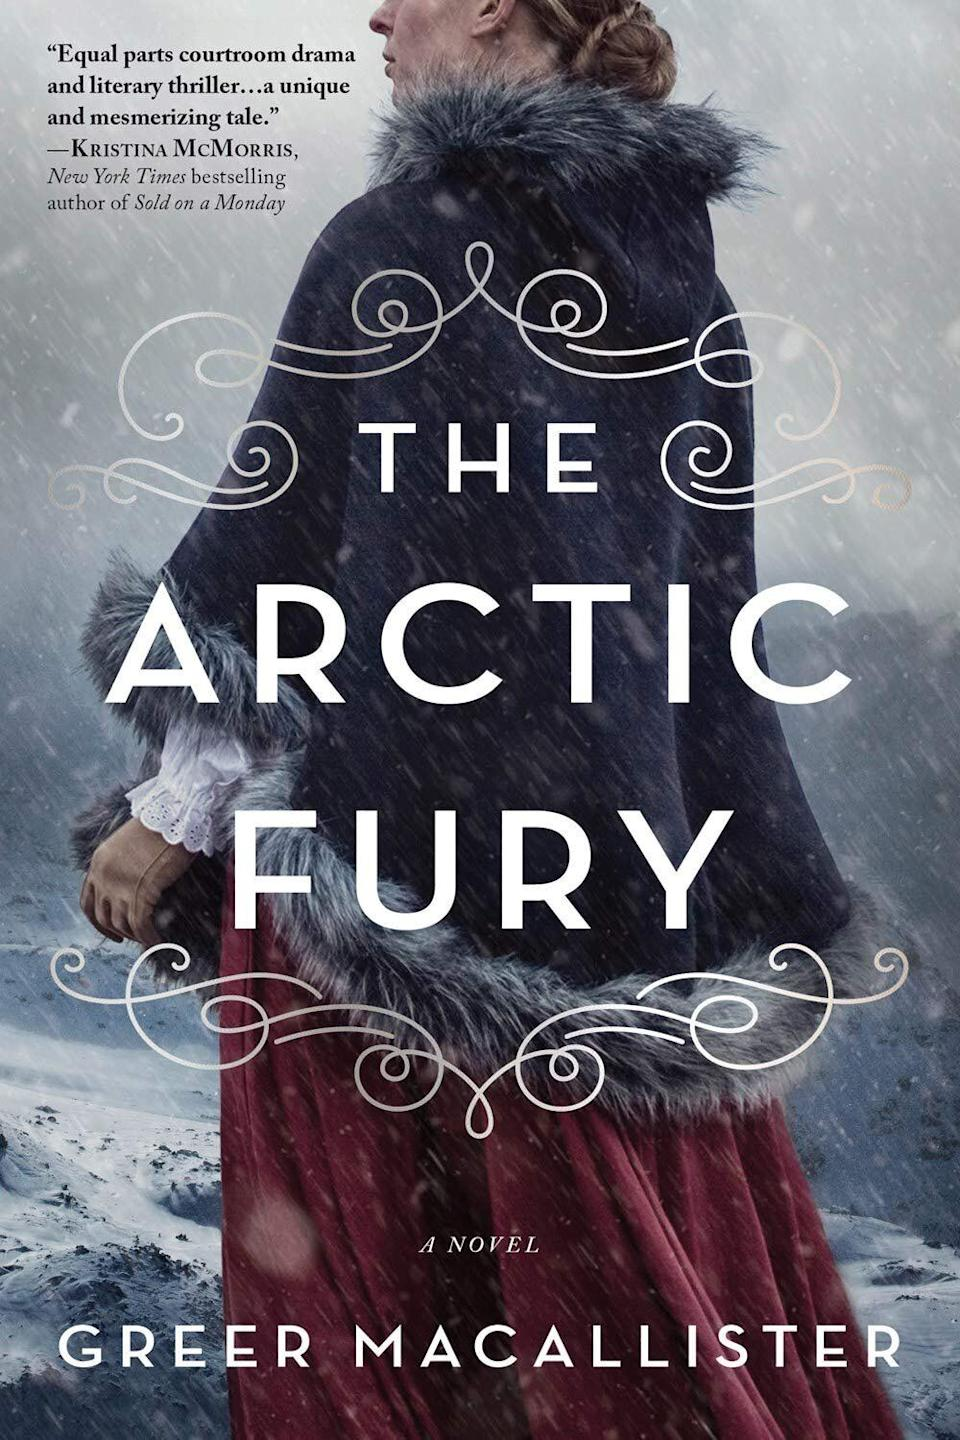 """""""The Arctic Fury"""" is another book this month that uses a real historical event as a springboard for mystery and adventure. Eccentric Lady Jane Franklin proposes a radical strategy for finding her husband's lost expedition into the Arctic during the 1850s: Send a crew of women to find the ship, led by adventurer Virginia Reeve. But when only five women return, Virginia faces charges of murder and endless questions about what happened out in the cold. Read more about it on <a href=""""https://www.goodreads.com/book/show/51684880-the-arctic-fury"""">Goodreads</a>, and grab a copy on <a href=""""https://amzn.to/33yyYHG"""">Amazon</a> or <a href=""""https://fave.co/2Vqm2Pv"""">Bookshop</a>.<br /><br /><i>Expected release date:</i> <i>December 1</i>"""